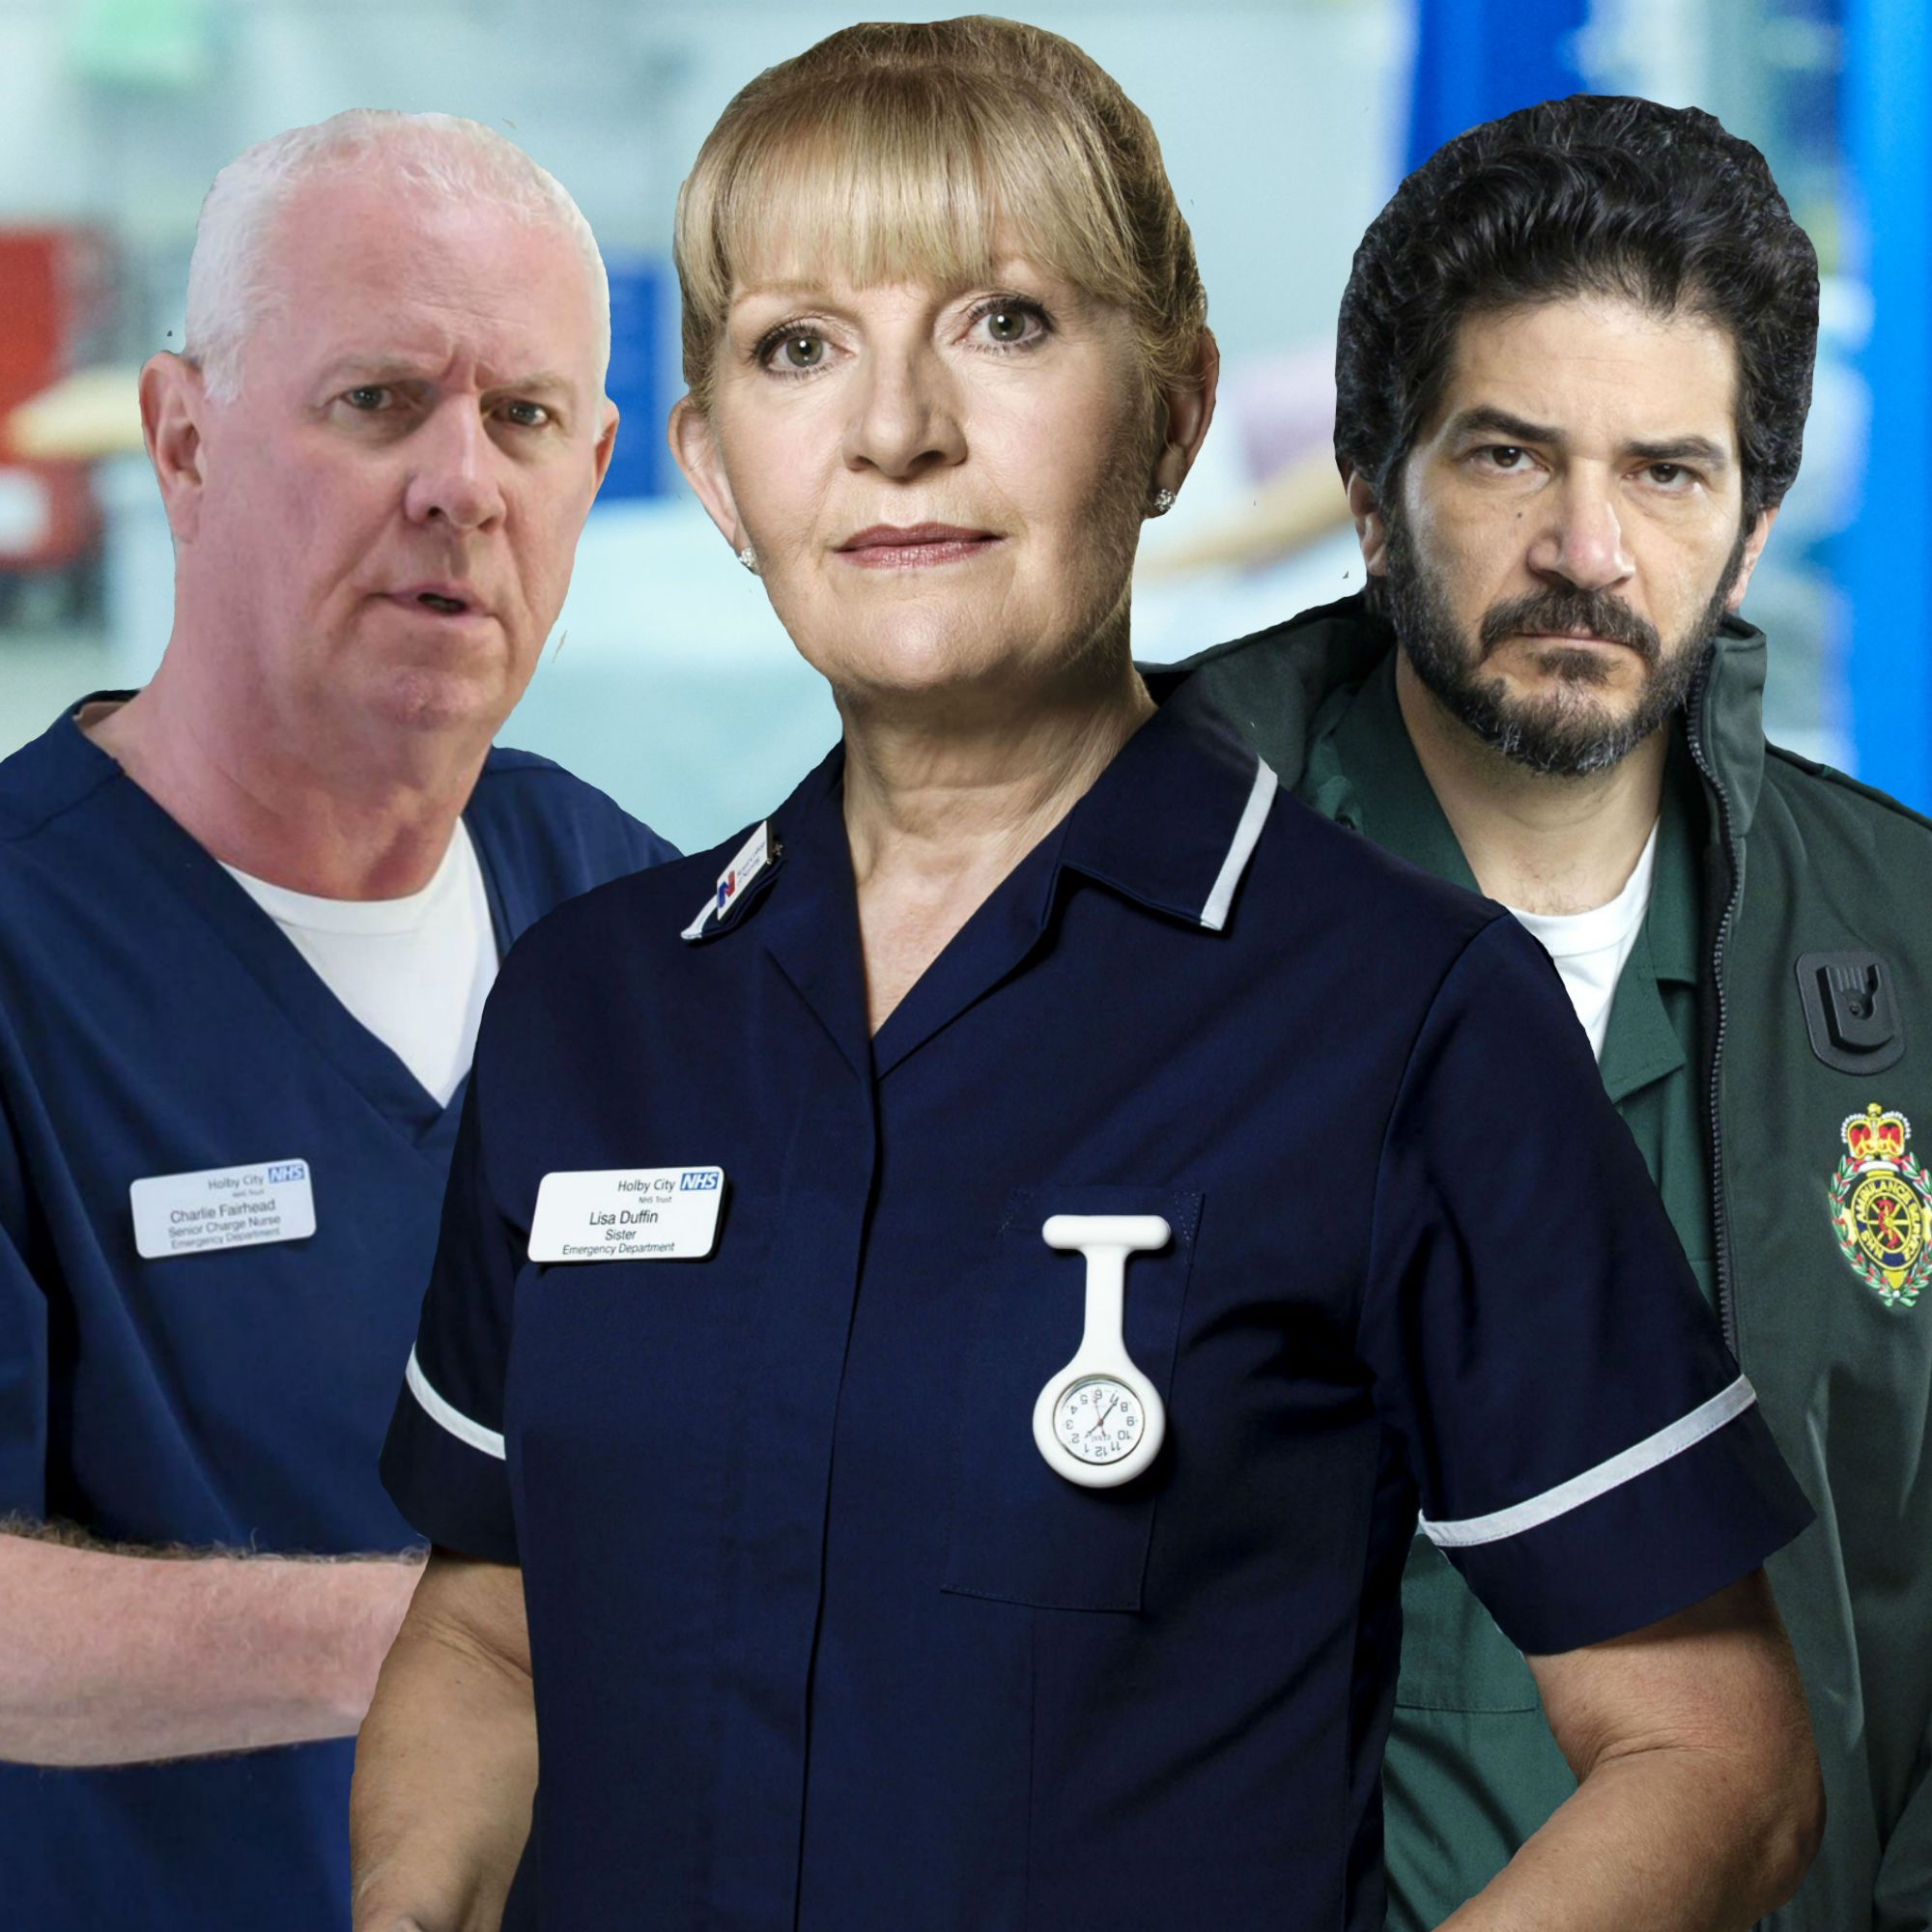 7 huge Casualty spoilers for Duffy's final episode